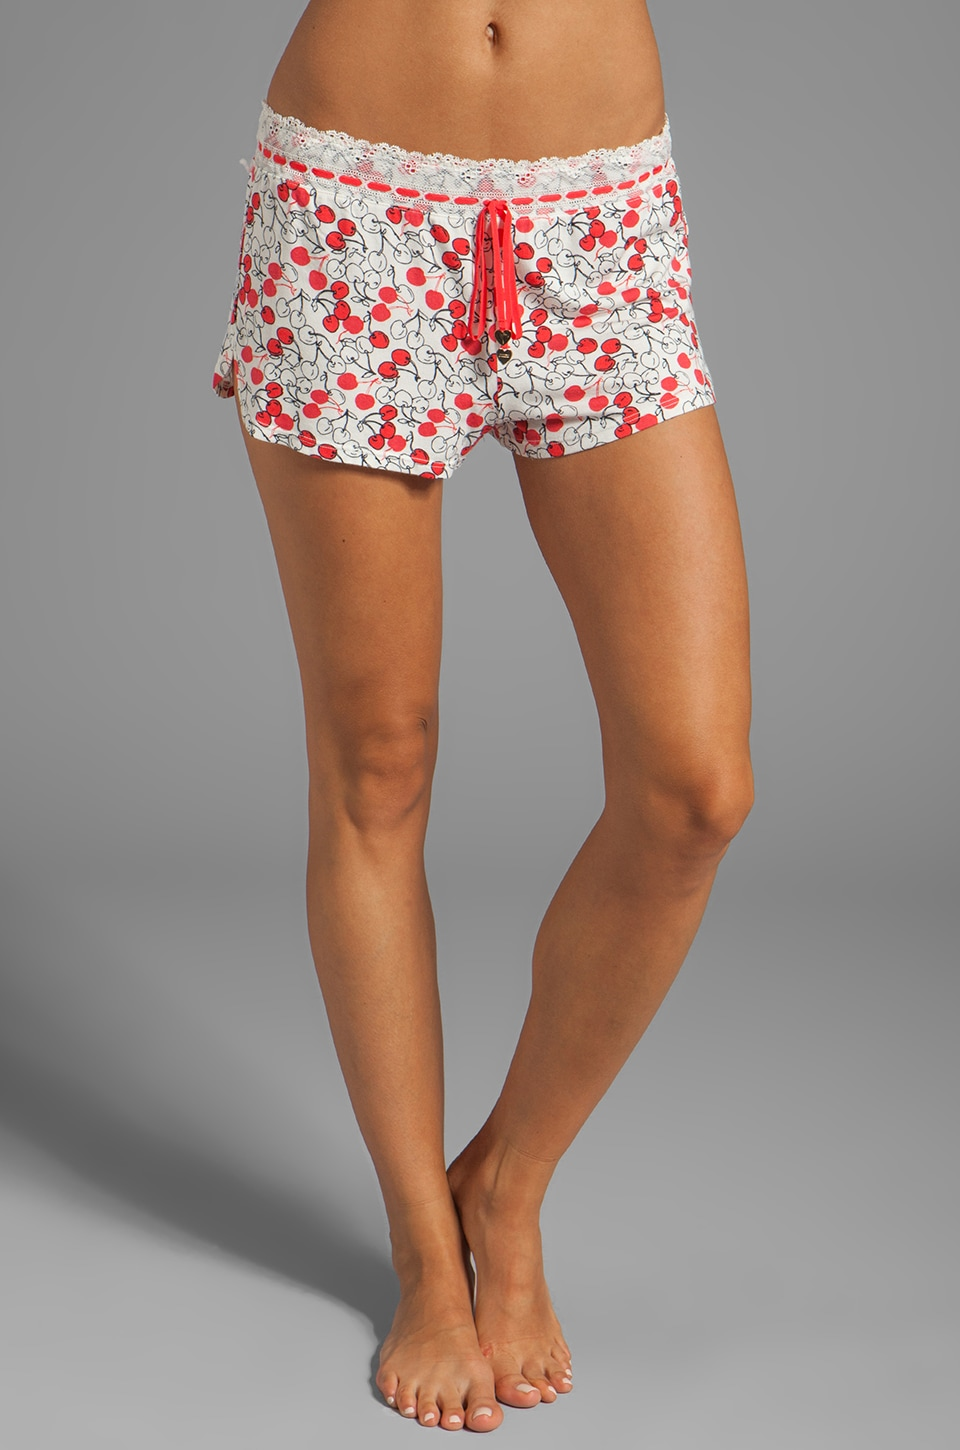 Juicy Couture Printed Short in Cardinal Sketch